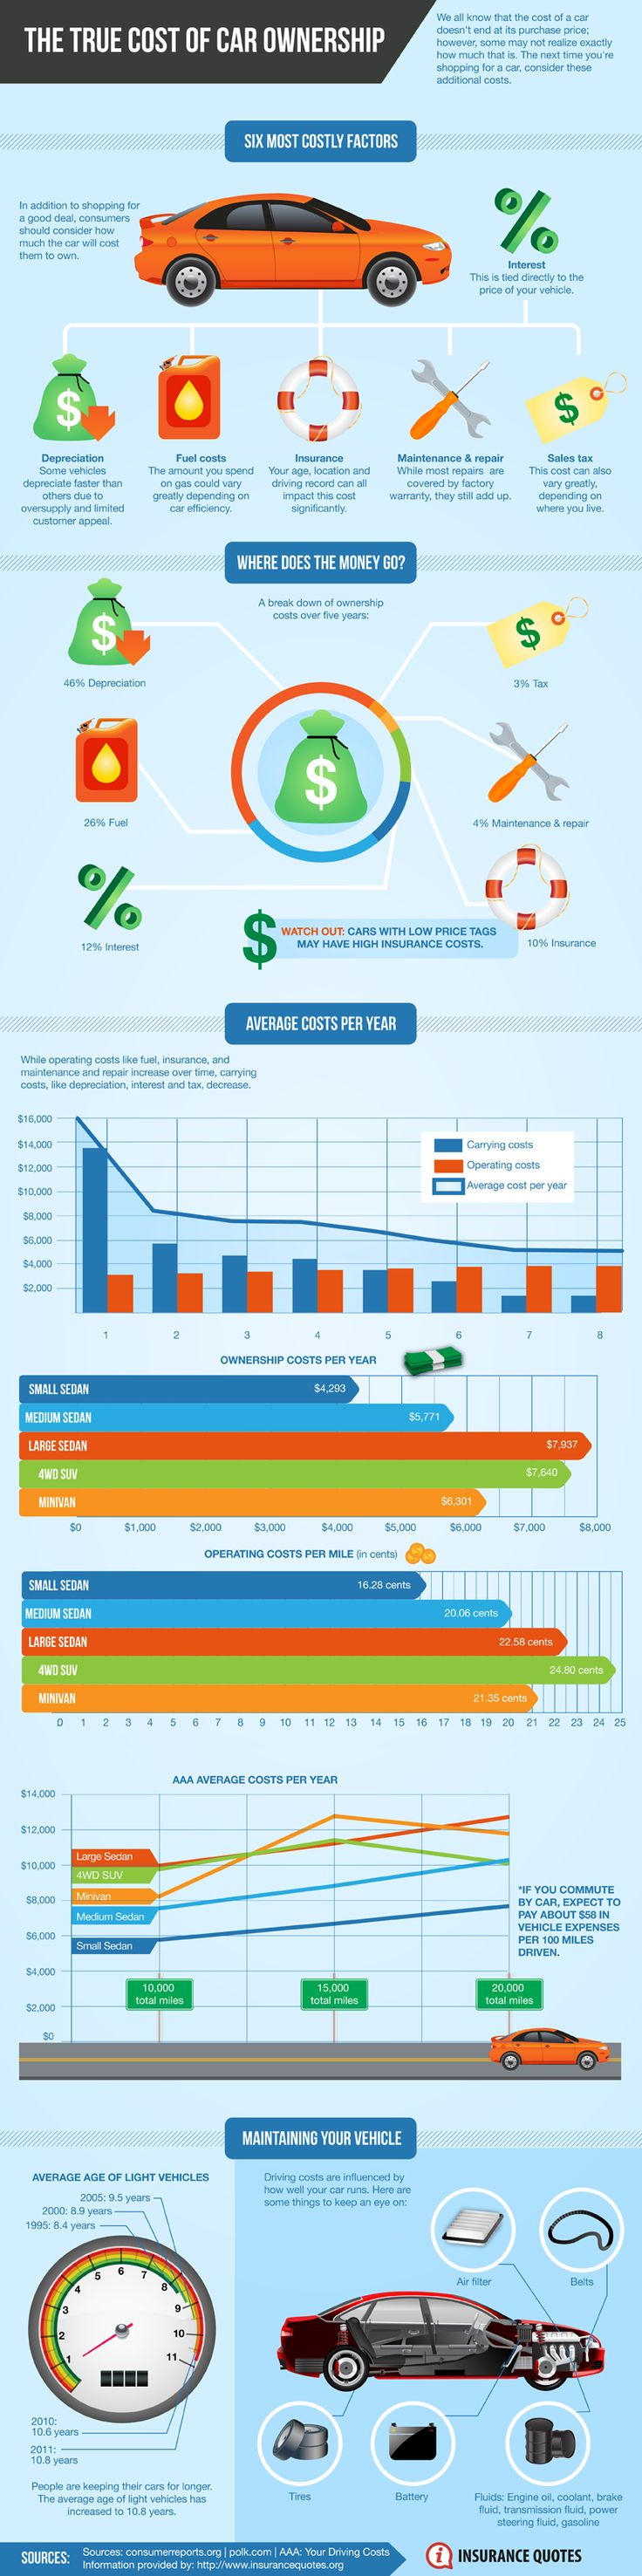 The true cost of car ownership infographic